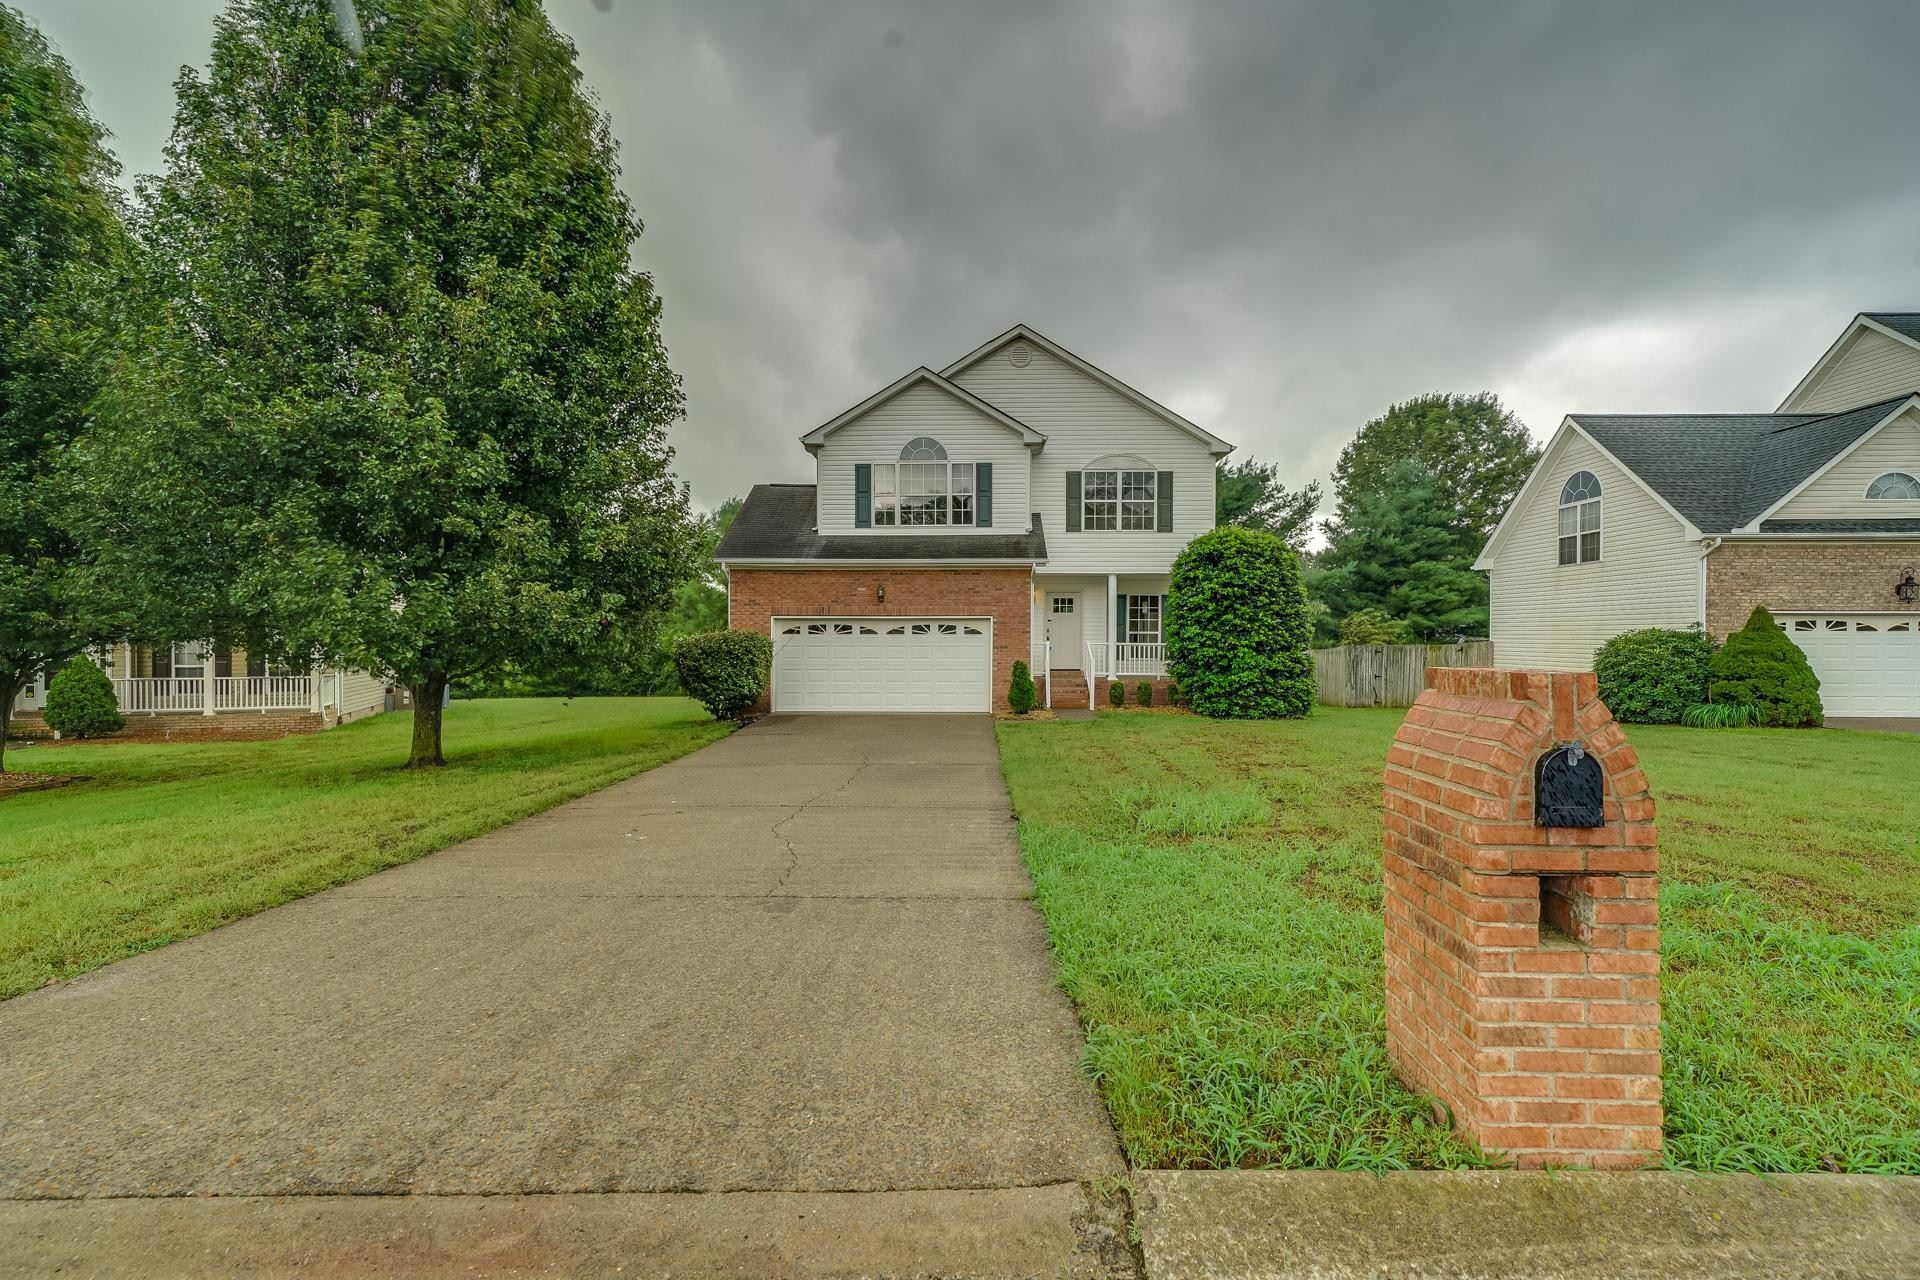 432 Dorchester Pl, Gallatin, TN 37066 - MLS#: 2228251